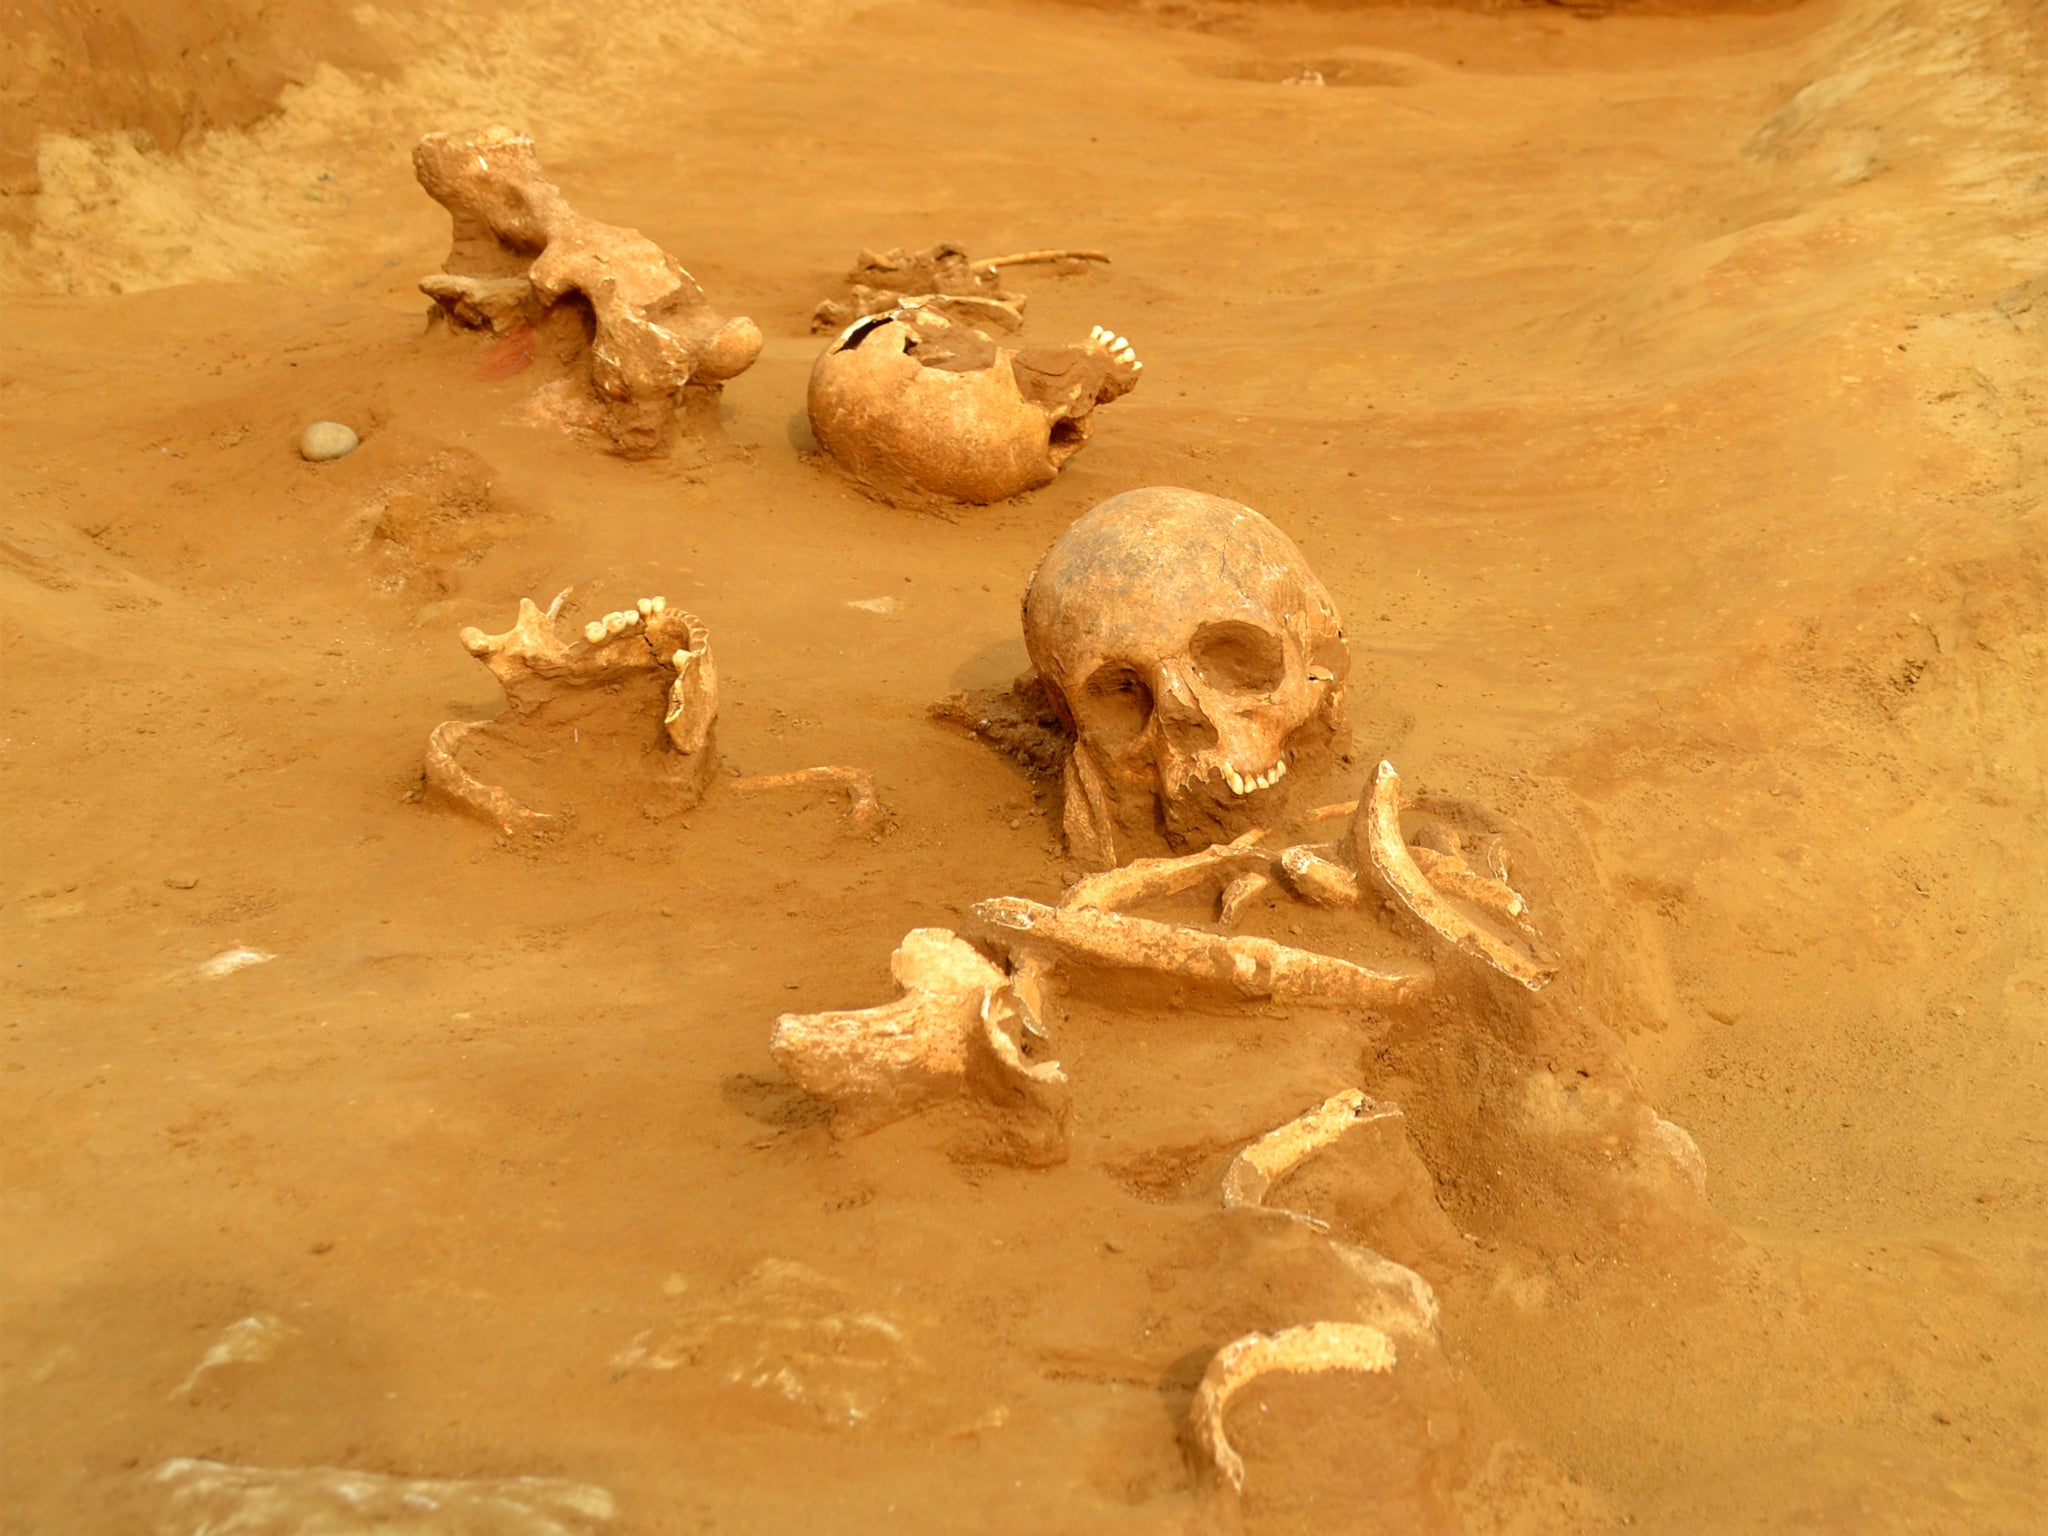 Exclusive: Slaughtered bodies stripped of their flesh - a gruesome glimpse of Iron-Age massacre at UK's largest hill fort